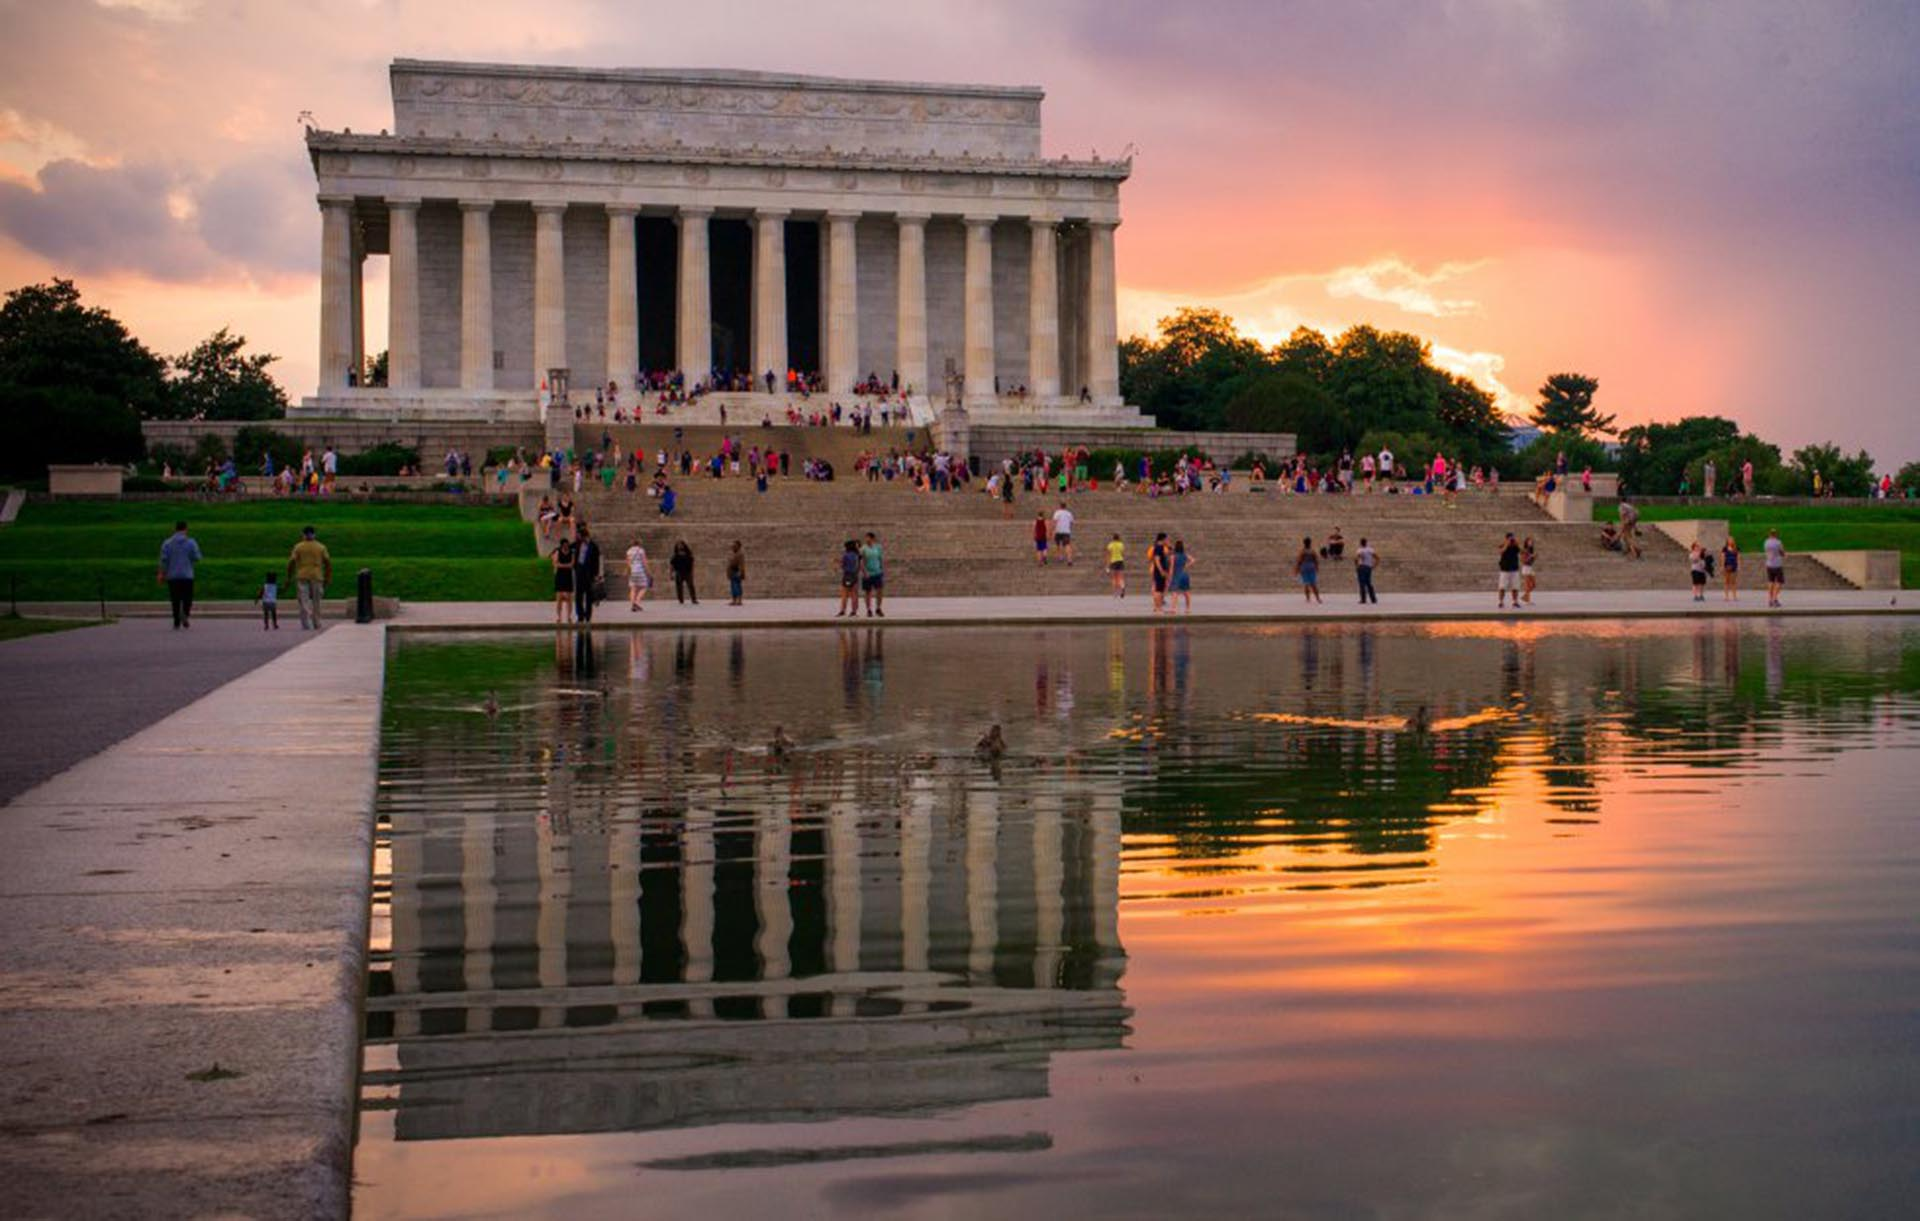 Lincoln Memorial (Washington D.C., Estados Unidos)